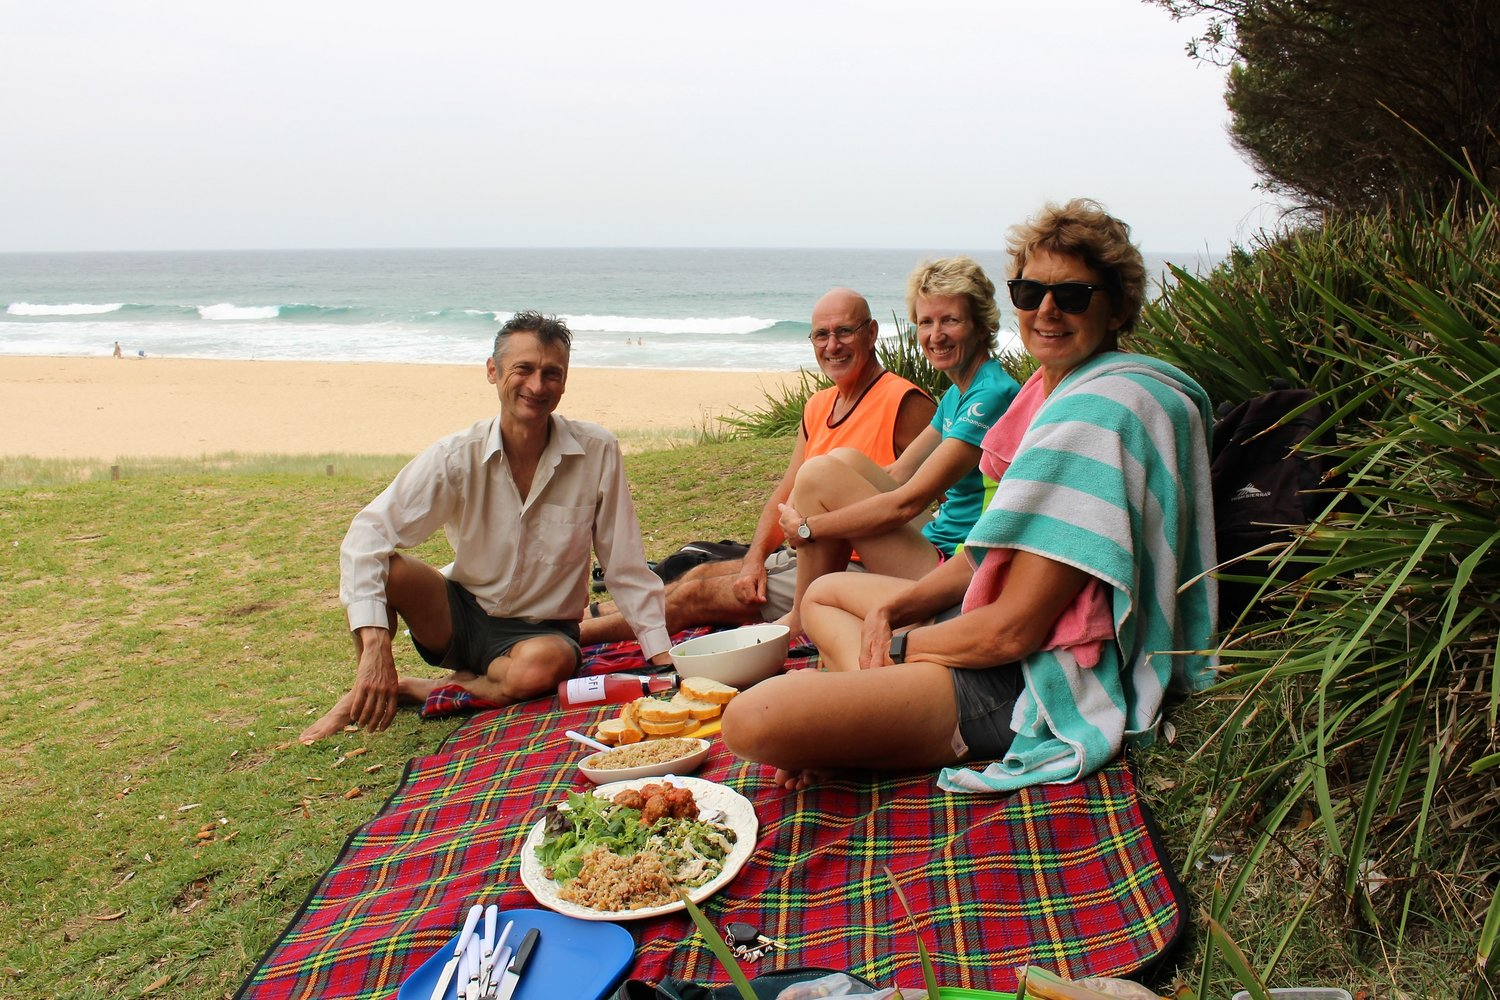 A Beach Picnic at Garie - We had a fantastic day out with Sydney Nimble Tours! It more than exceeded our expecations. Our tour guide Greg was very affable and knowledgeable pointing out interesting things that we would not have noticed otherwise. The picnic lunch provided was delicious. We highly recommend Sydney Nimble Tours.Fran from Holland November 2018